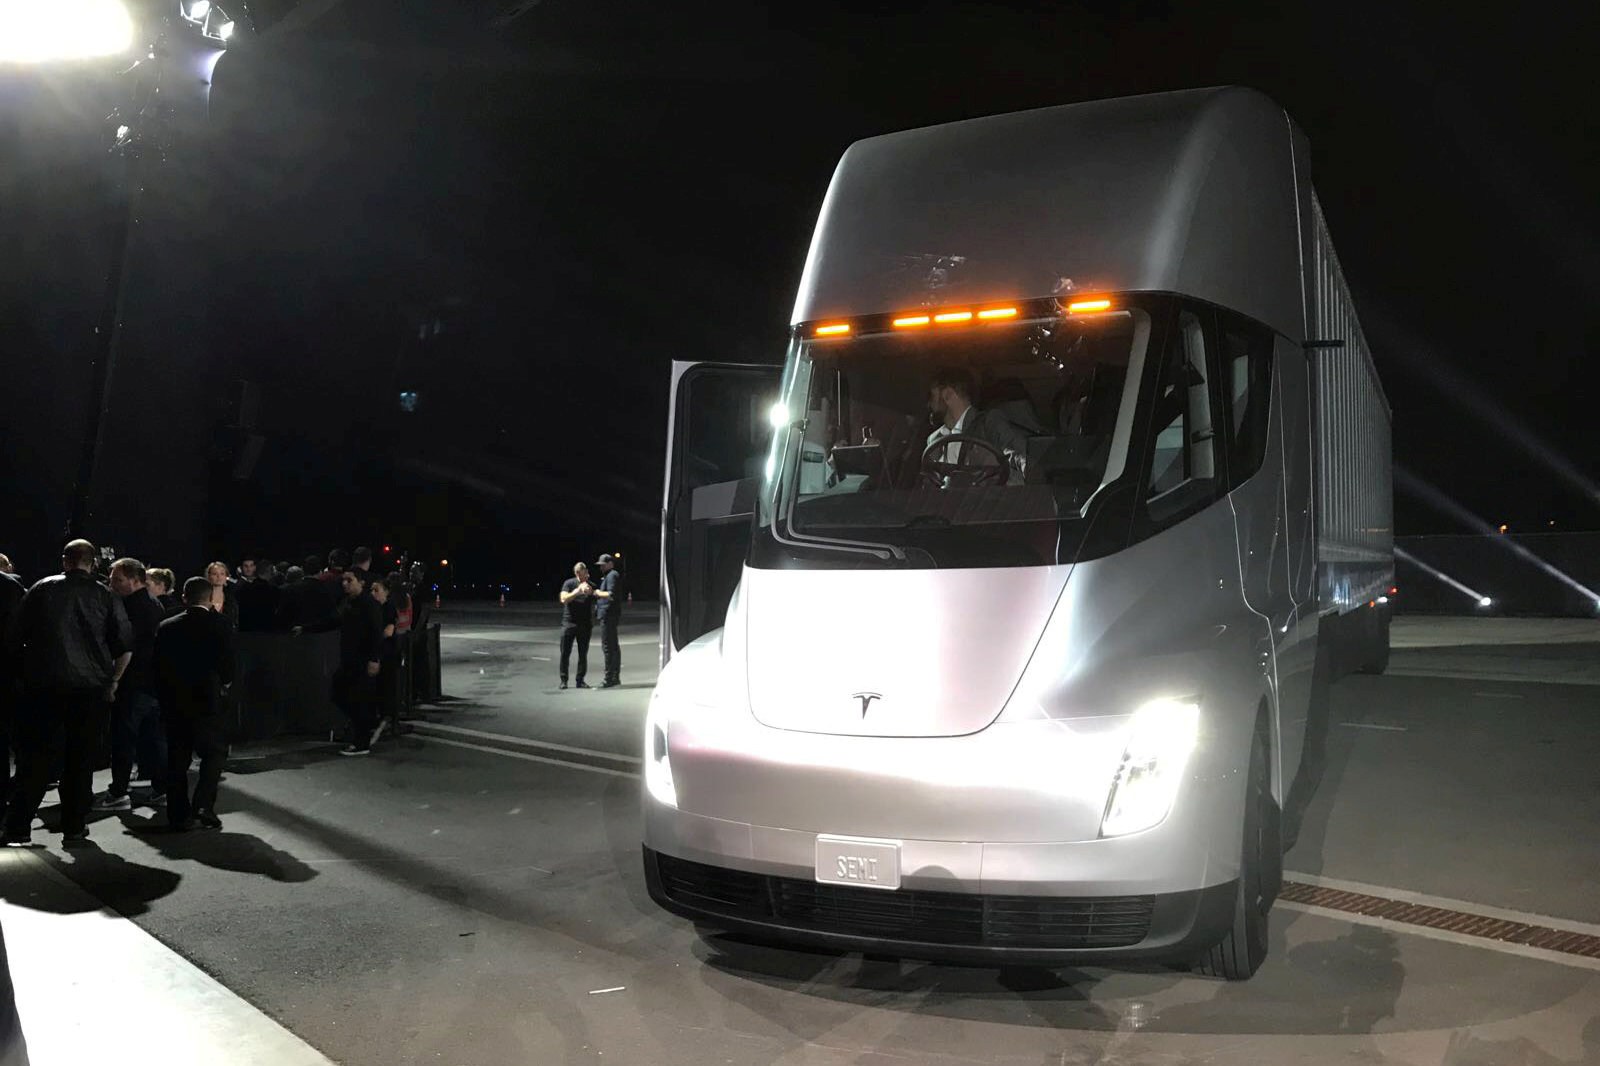 Tesla's new electric semi truck is unveiled during a presentation in Hawthorne, California, U.S., November 16, 2017. REUTERS/Alexandria Sage